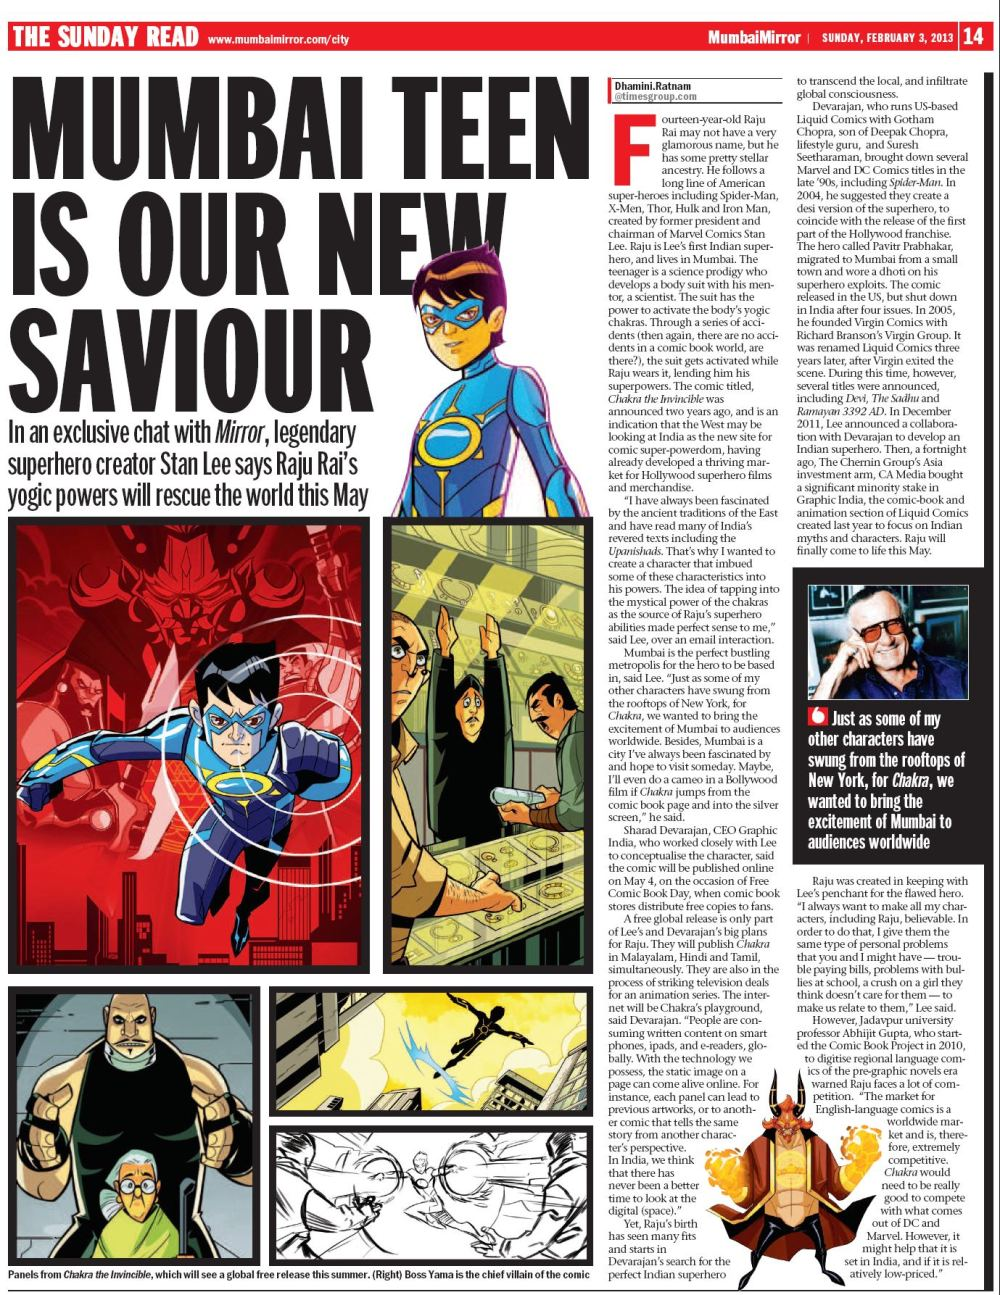 Mumbai_mirror_Stan_Lee